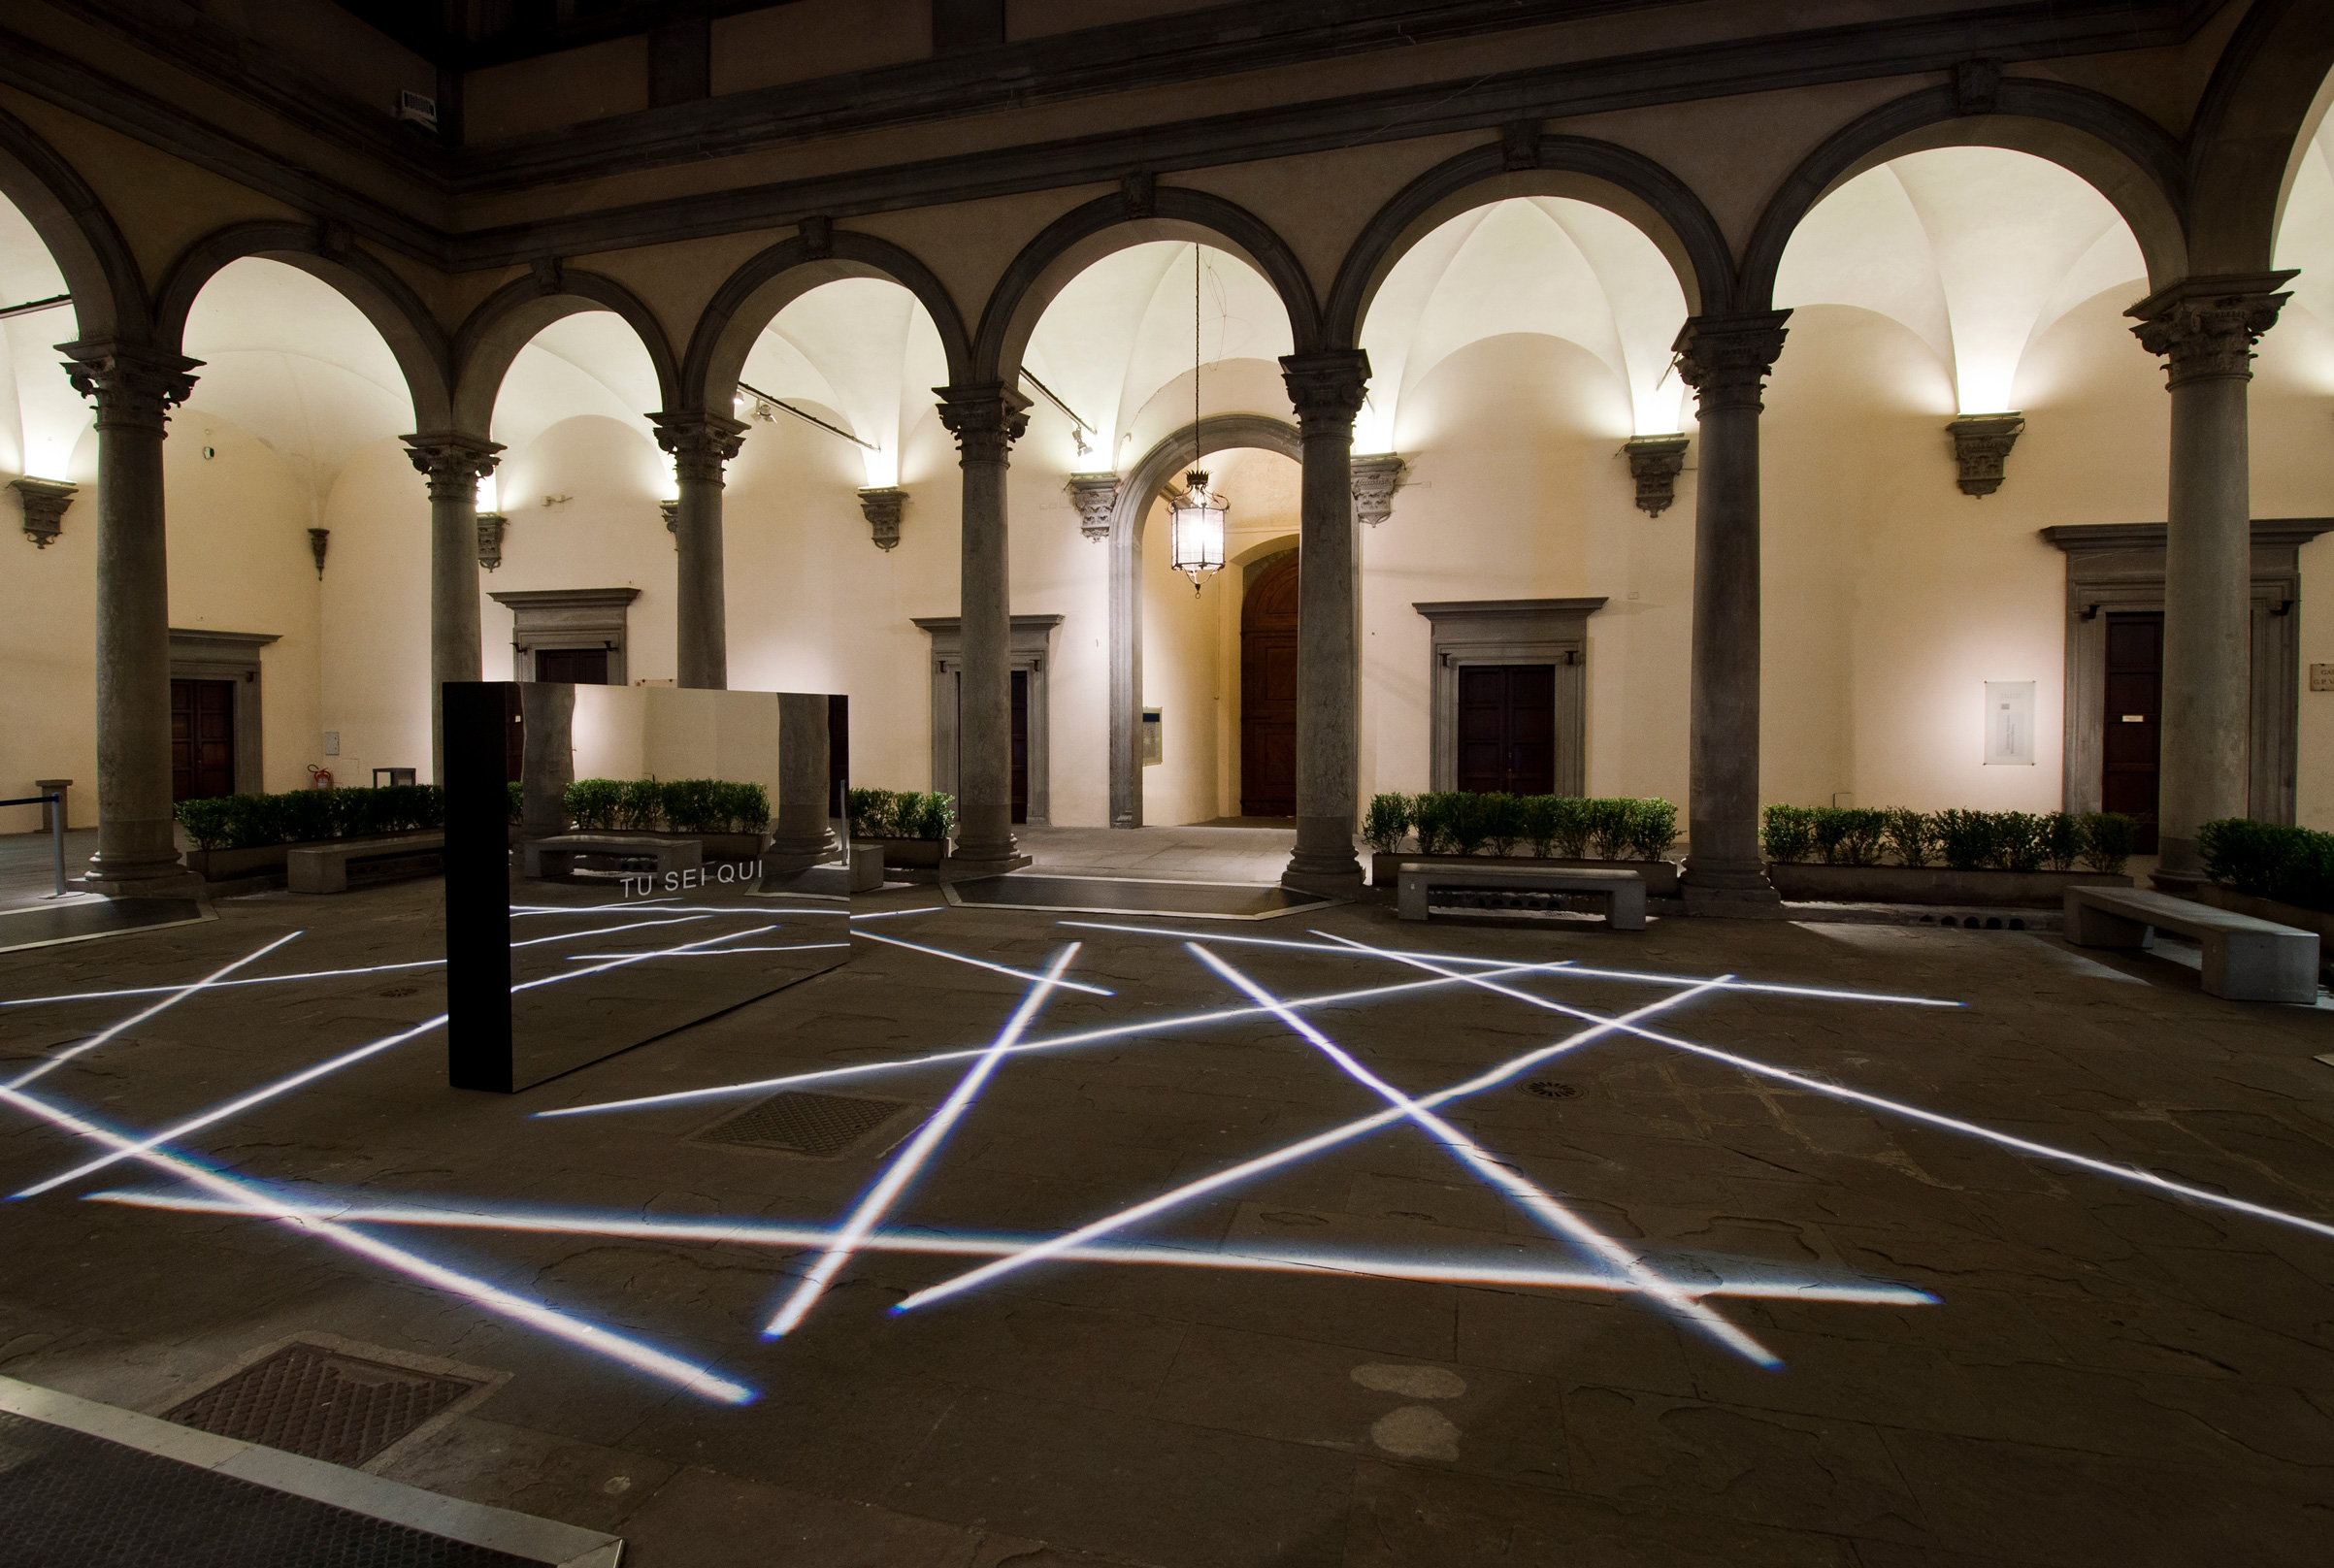 Outdoor court in strozzi palace firenze